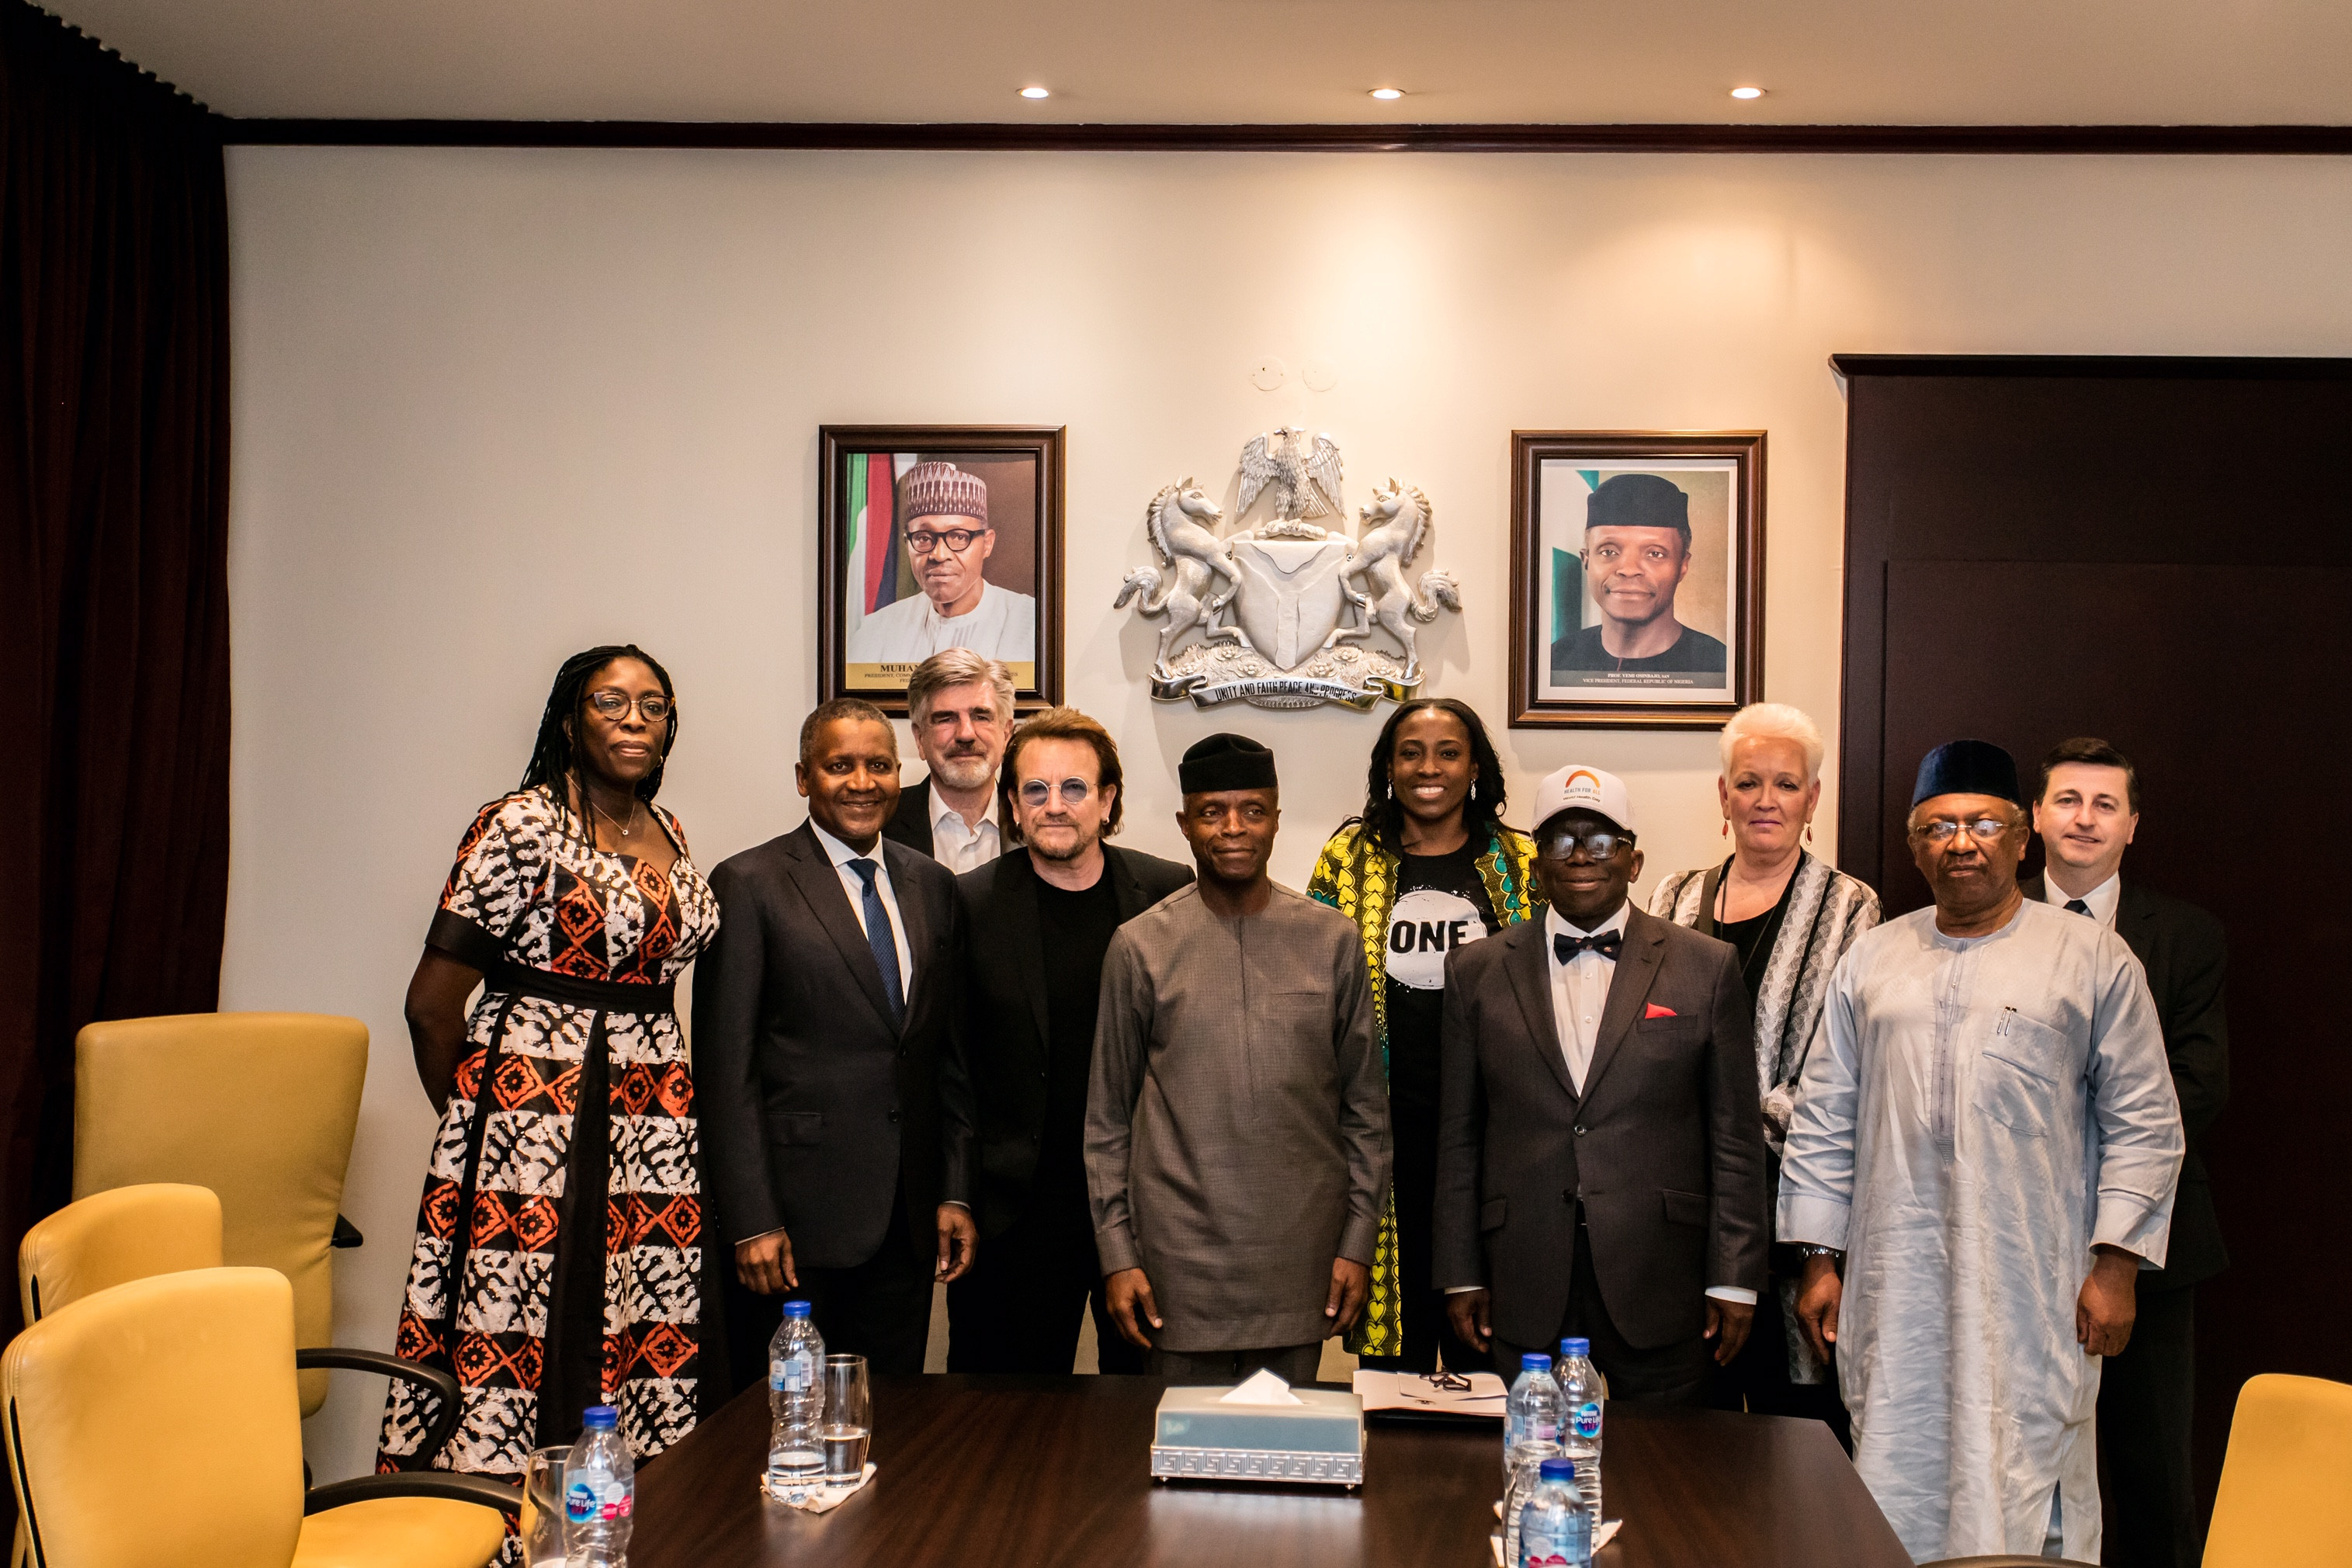 Photos: Senior Delegation From ONE Including Co-founder, Bono Meets With Vice President Osinbajo, Senate President Saraki